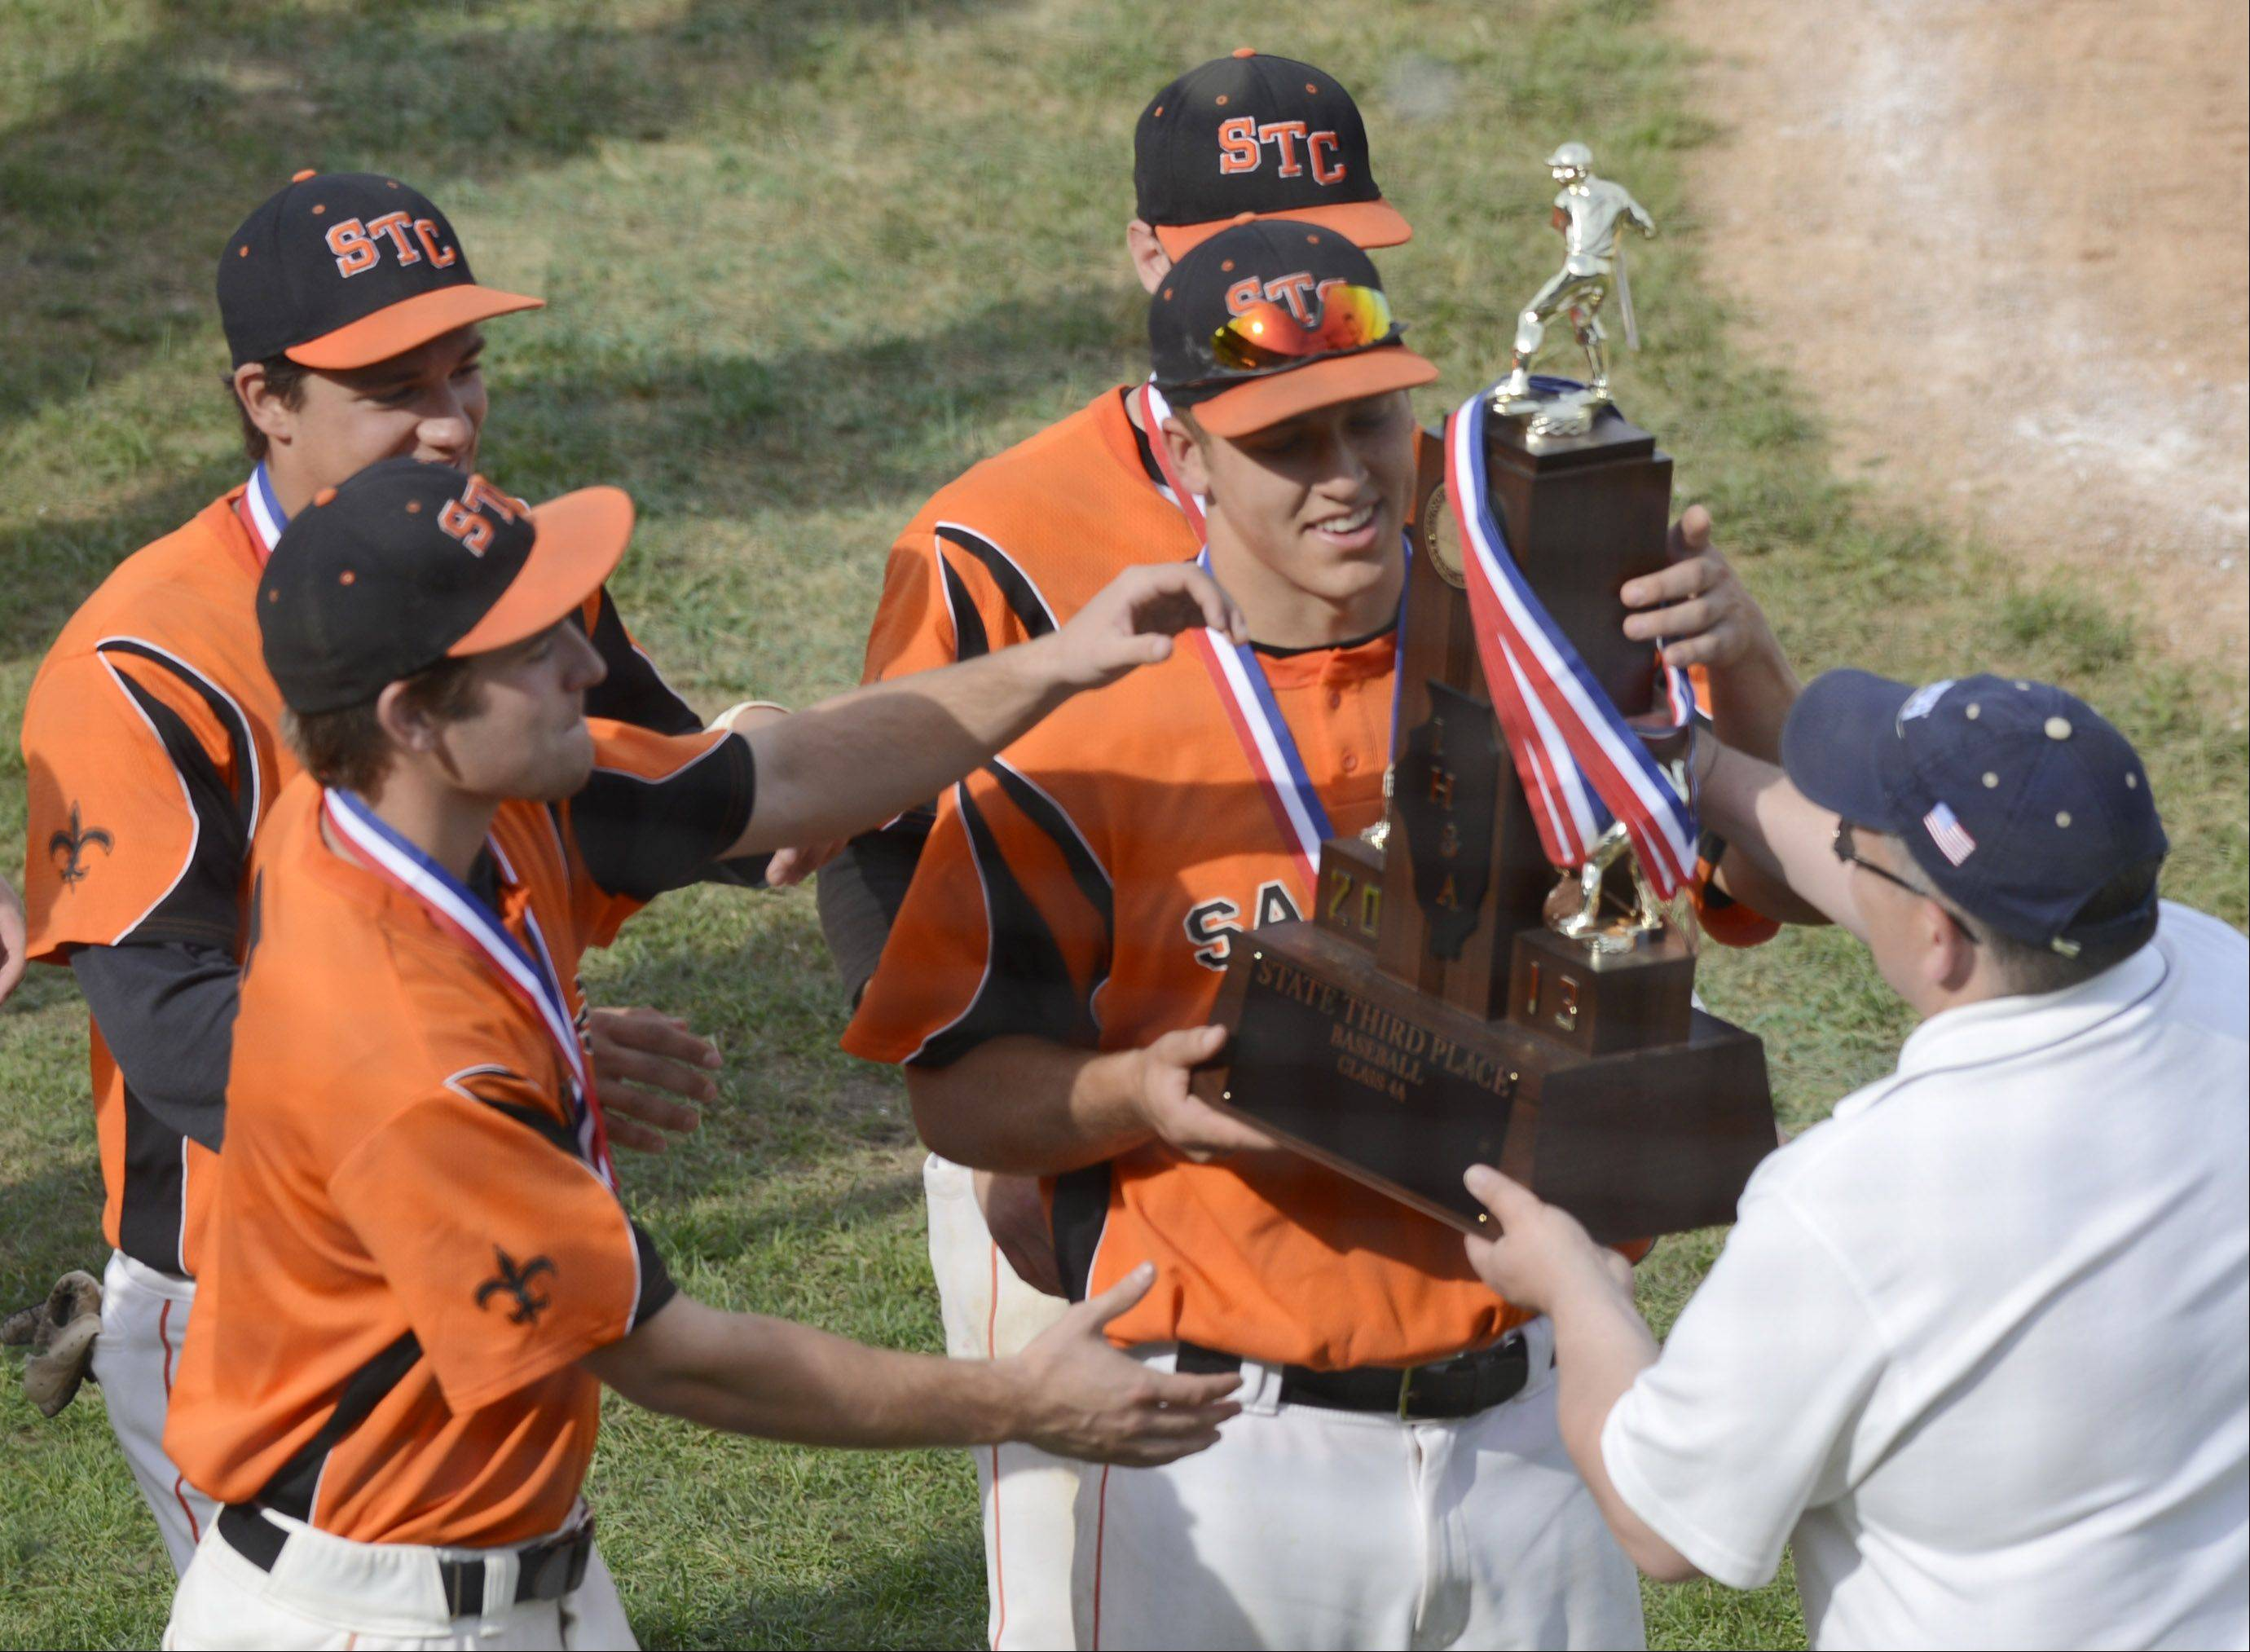 St. Charles East players receive their third-place trophy following the Class 4A state baseball third-place game against Neuqua Valley at Silver Cross Field in Joliet Saturday.